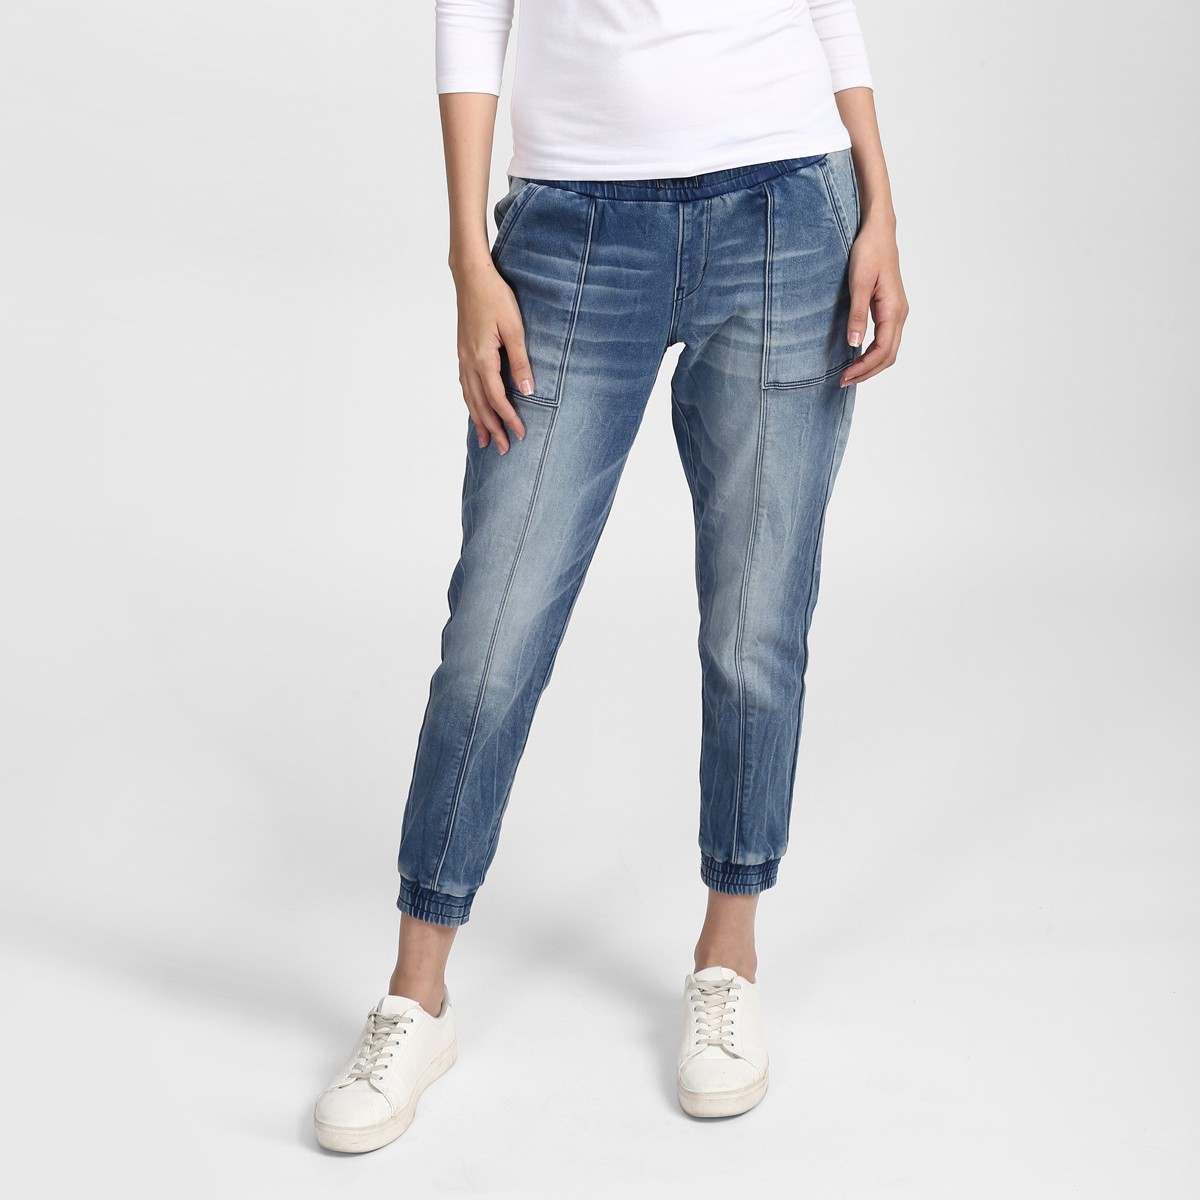 Denizen From Levi S Jogger Fit Women Jeans Blue Price Fashion Our extensive range of fits and styles means we've got a jean for every woman. denizen from levi s jogger fit women jeans blue